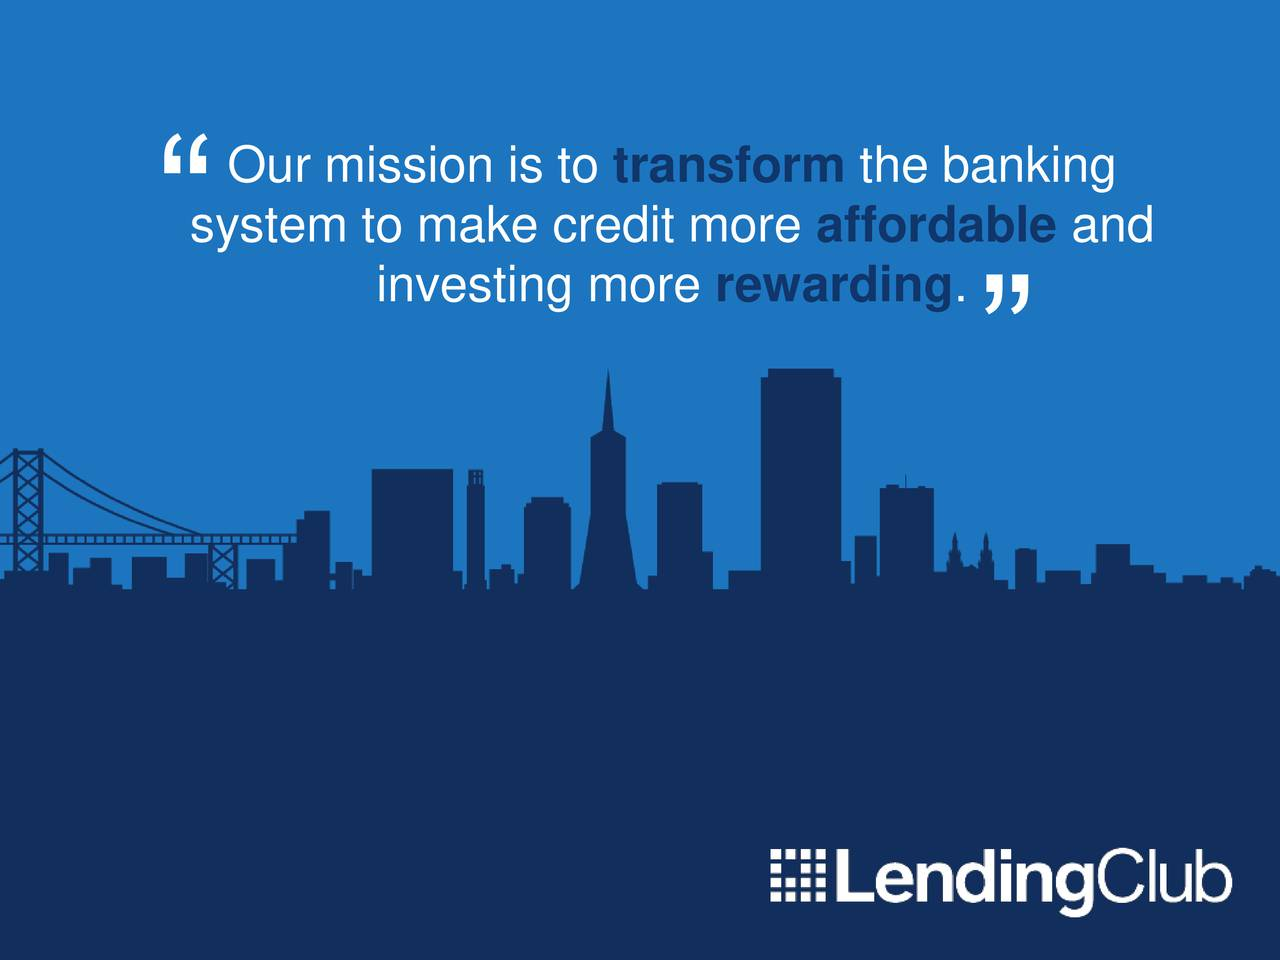 system to make credit more affordable and investing more rewarding.